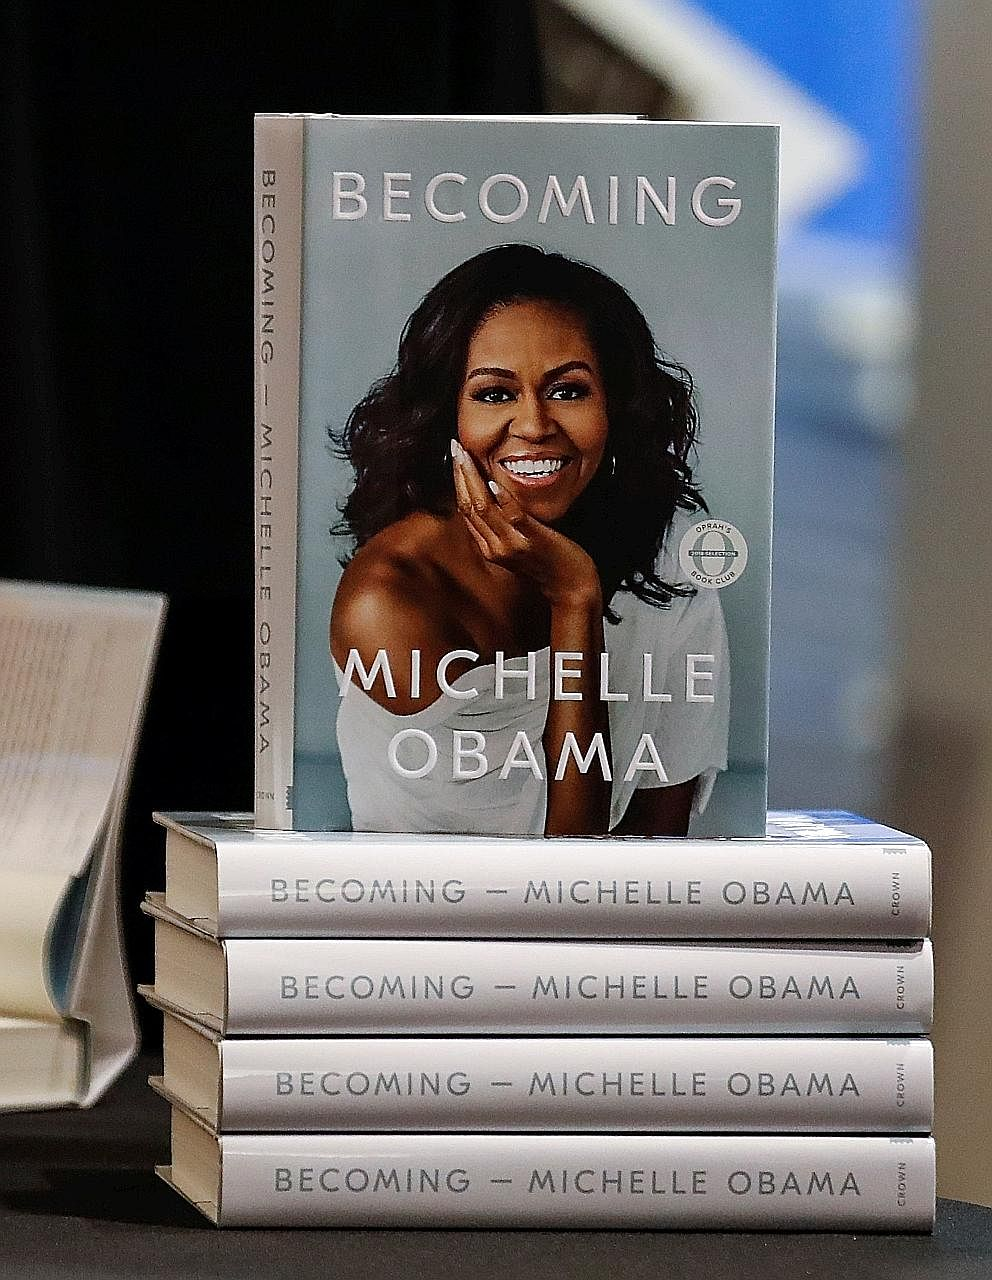 Mr Barack Obama's top picks for 2018 include (from left above) his wife's book Becoming, the movie Black Panther and a song by Janelle Monae.